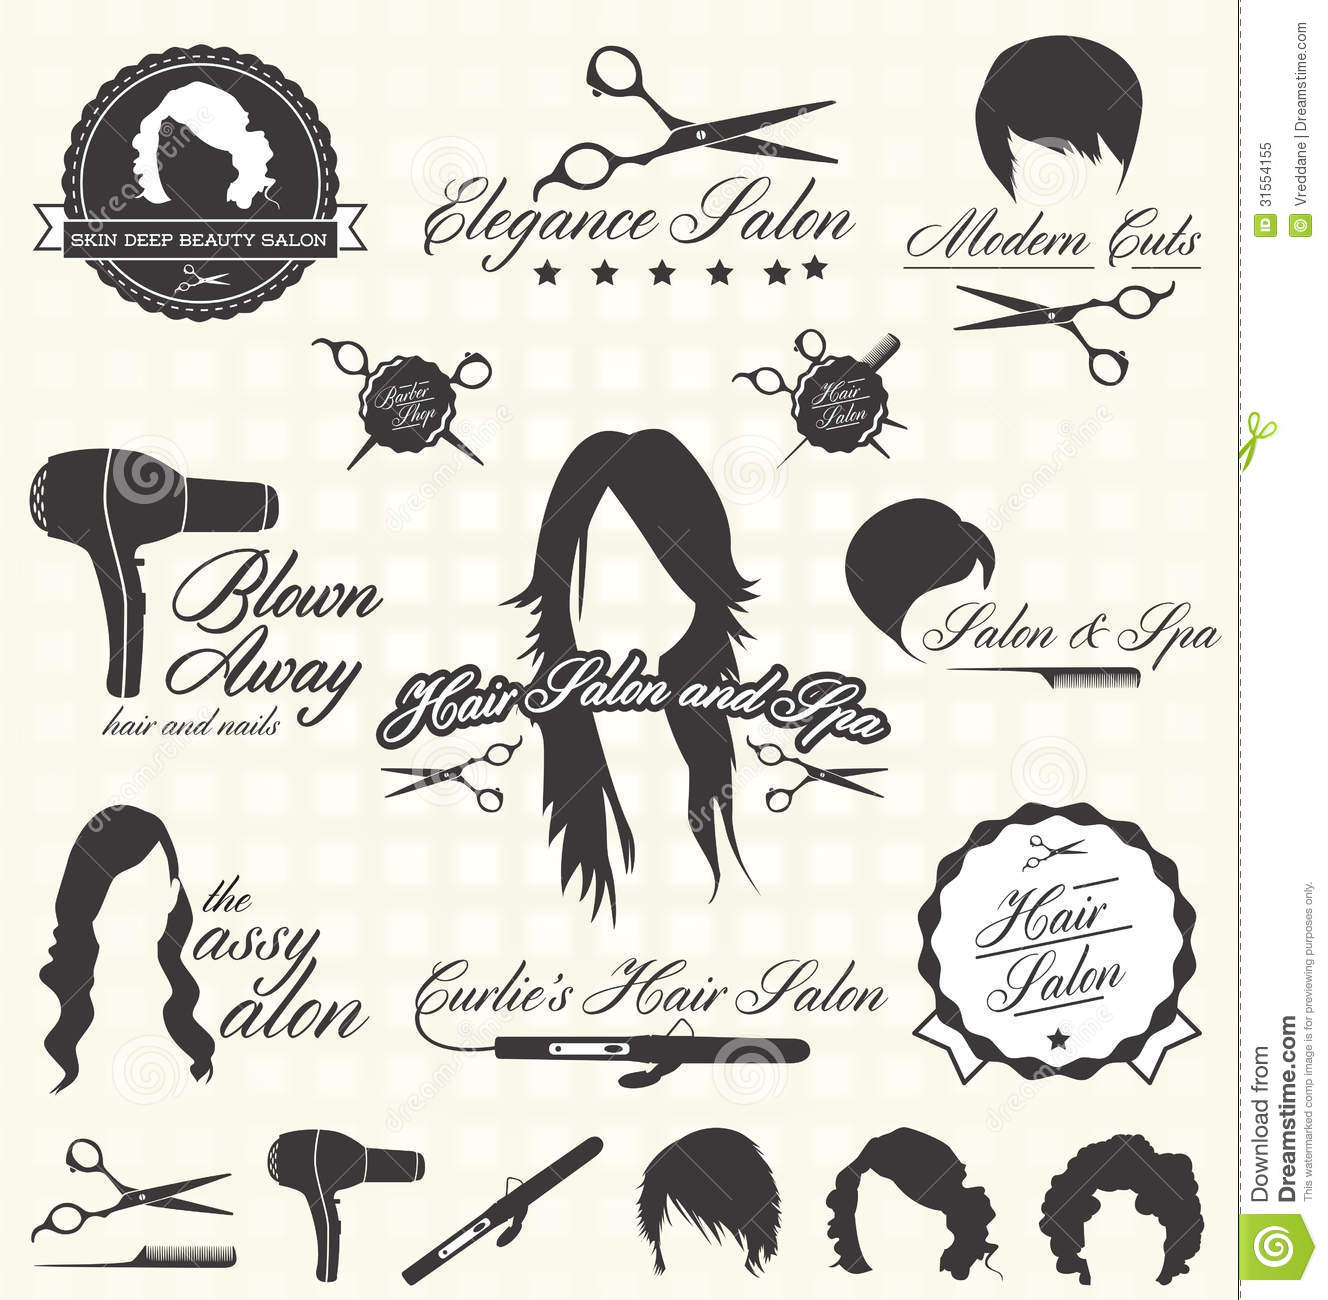 Retro Hair Salon Clipart - Clipart Kid